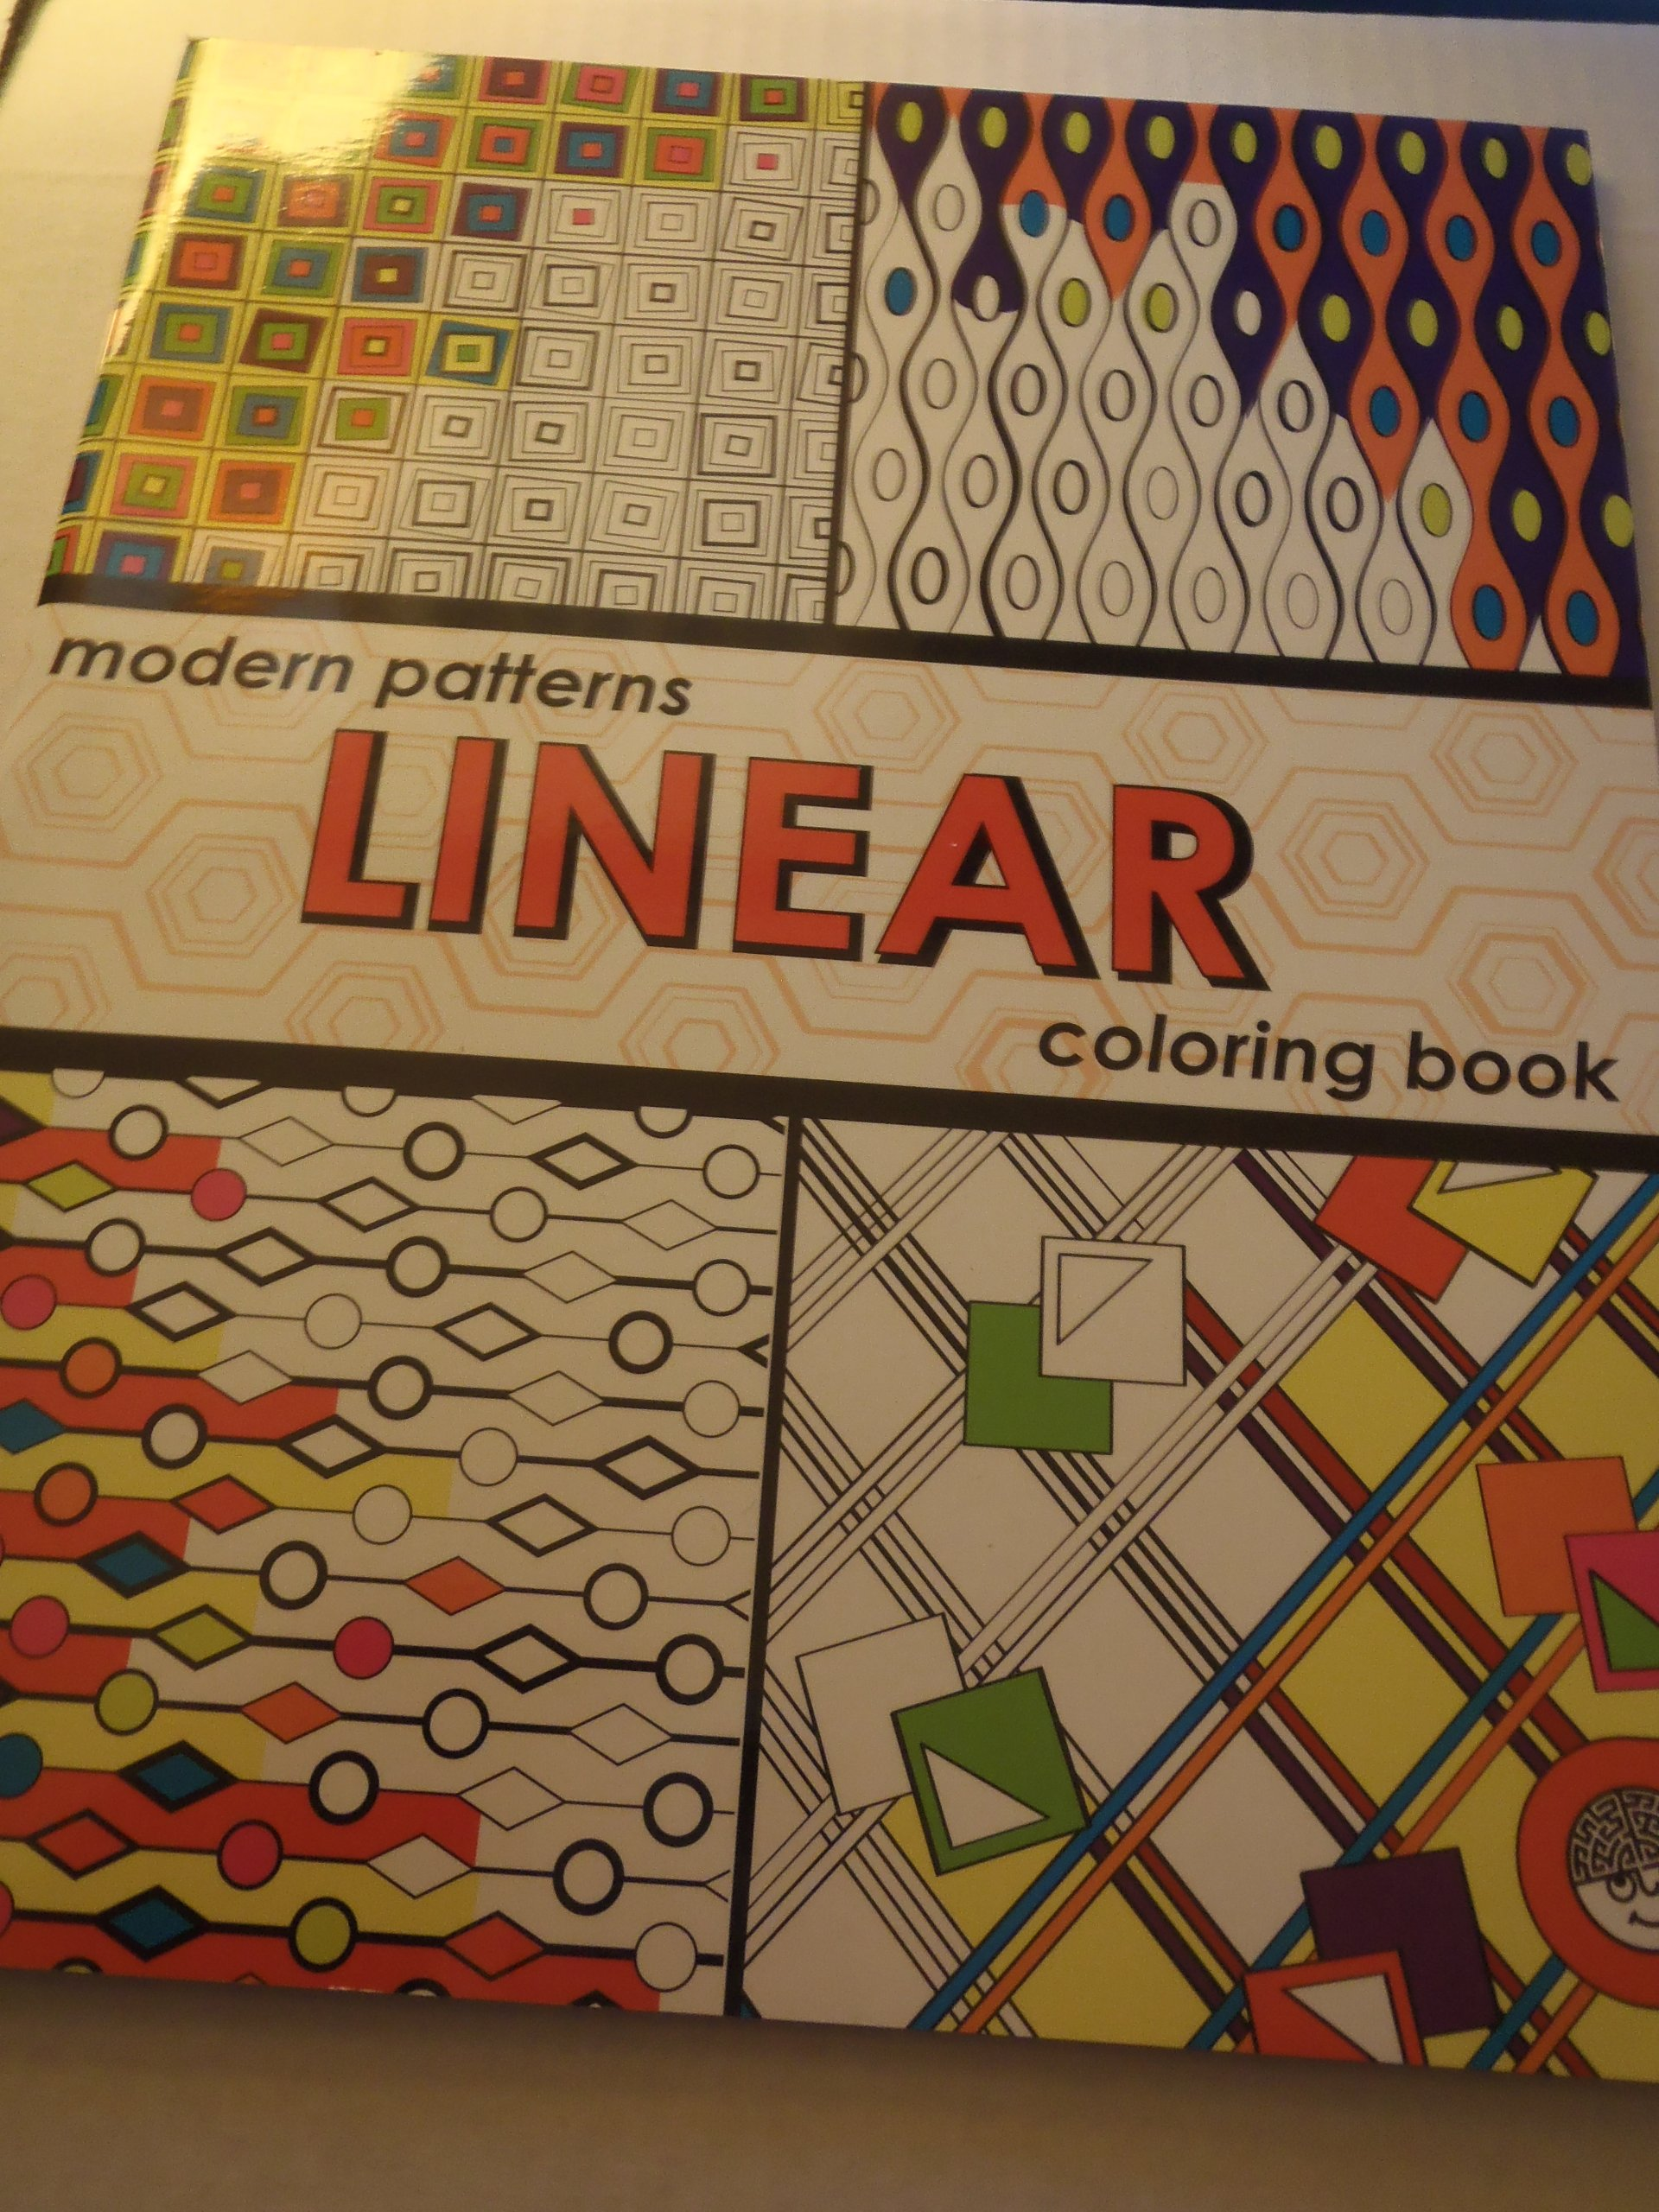 linear modern patterns coloring book mindware 9781933054247 amazoncom books - Modern Patterns Coloring Book